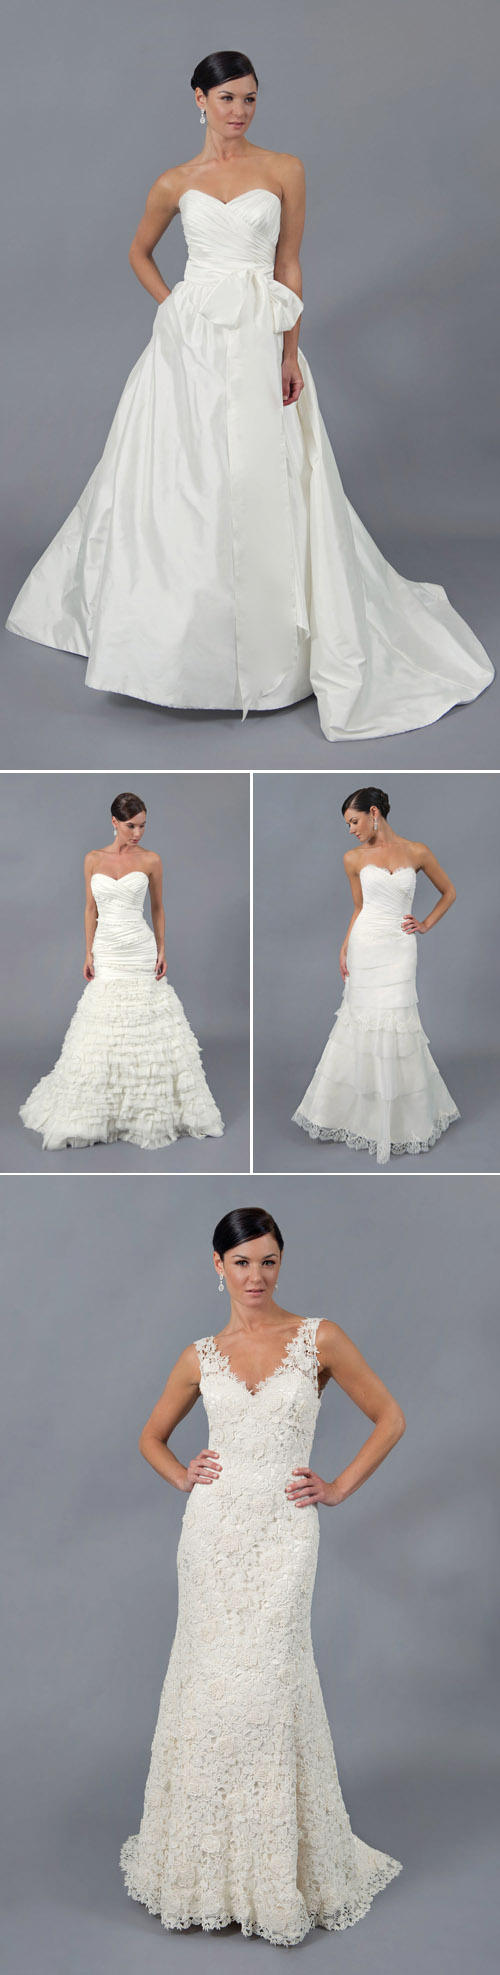 Modern-trousseau-wedding-dress-collection-spring-2012-3